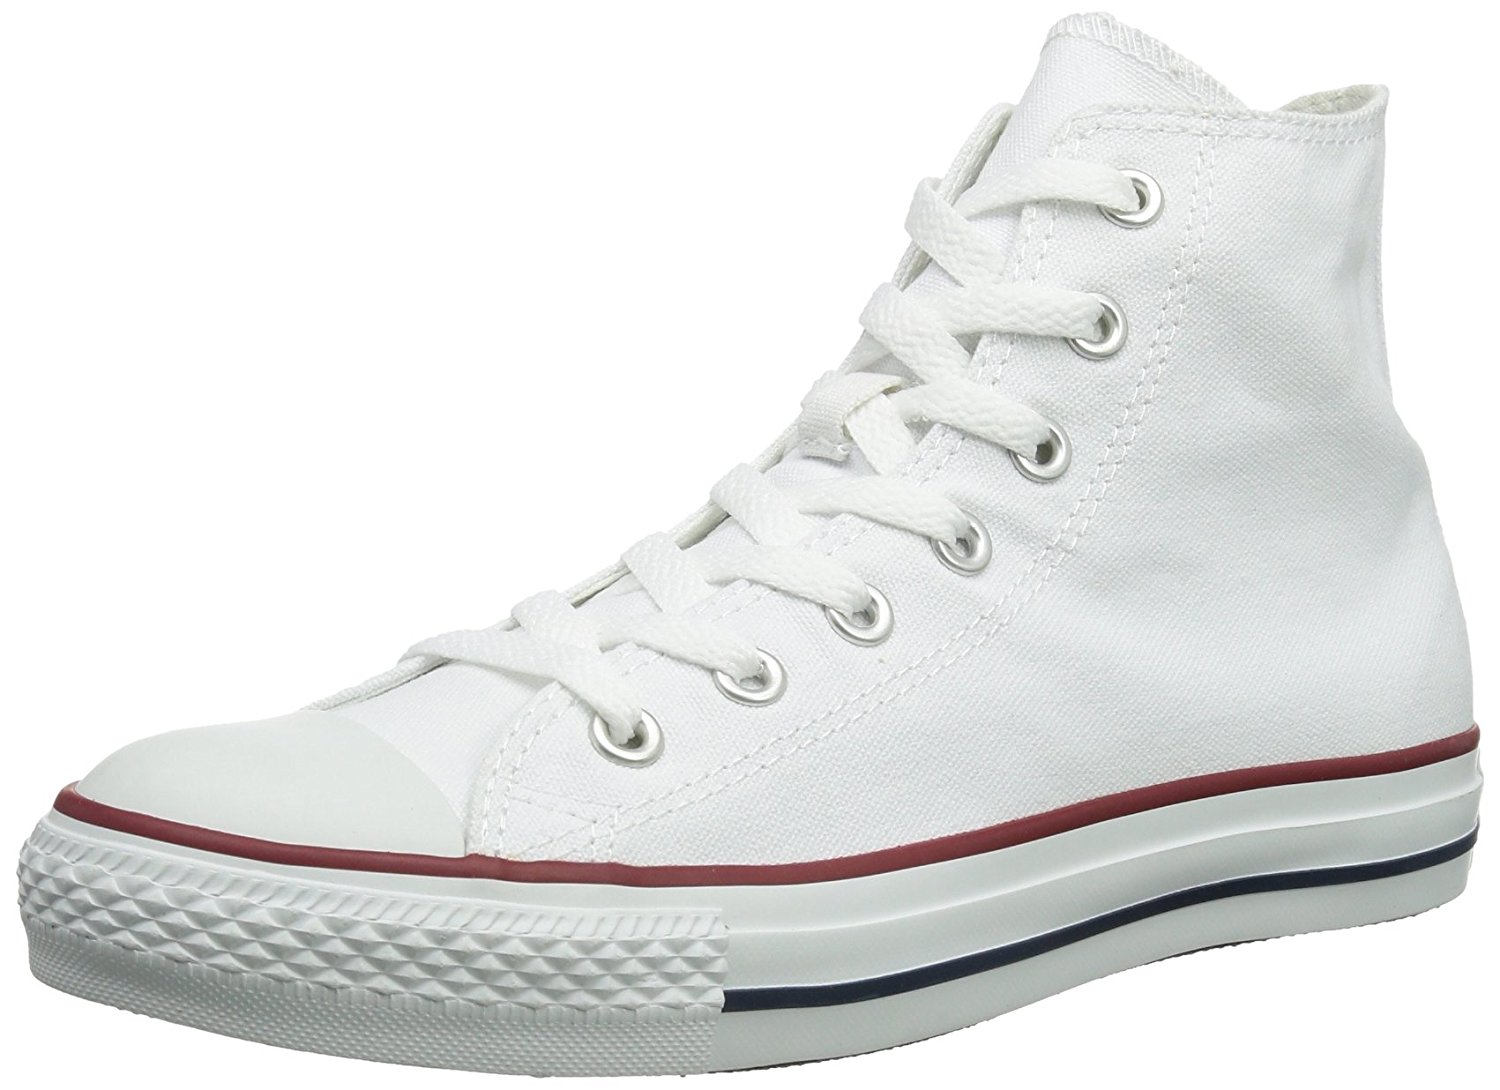 f91a5fd3e6e3 Converse Unisex Chuck Taylor All Star High Top Optical White M7650 ...